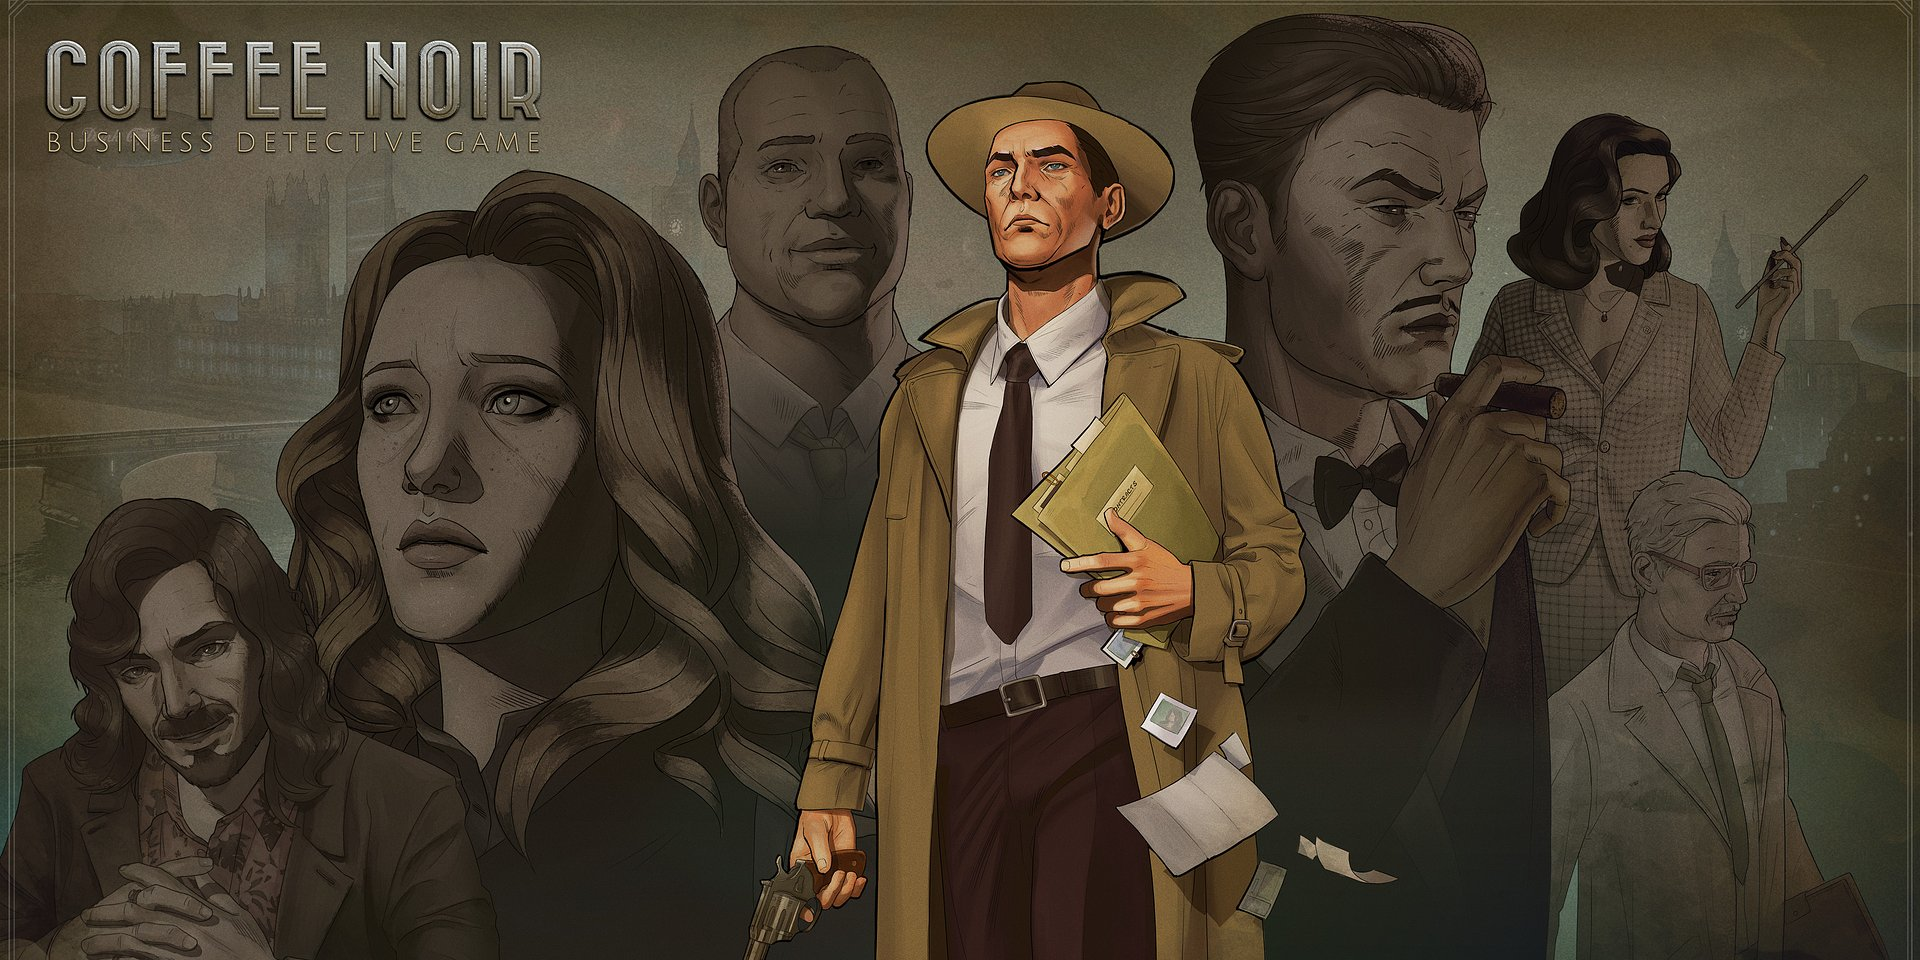 Coffee injected business management detective game Coffee Noir is out NOW!